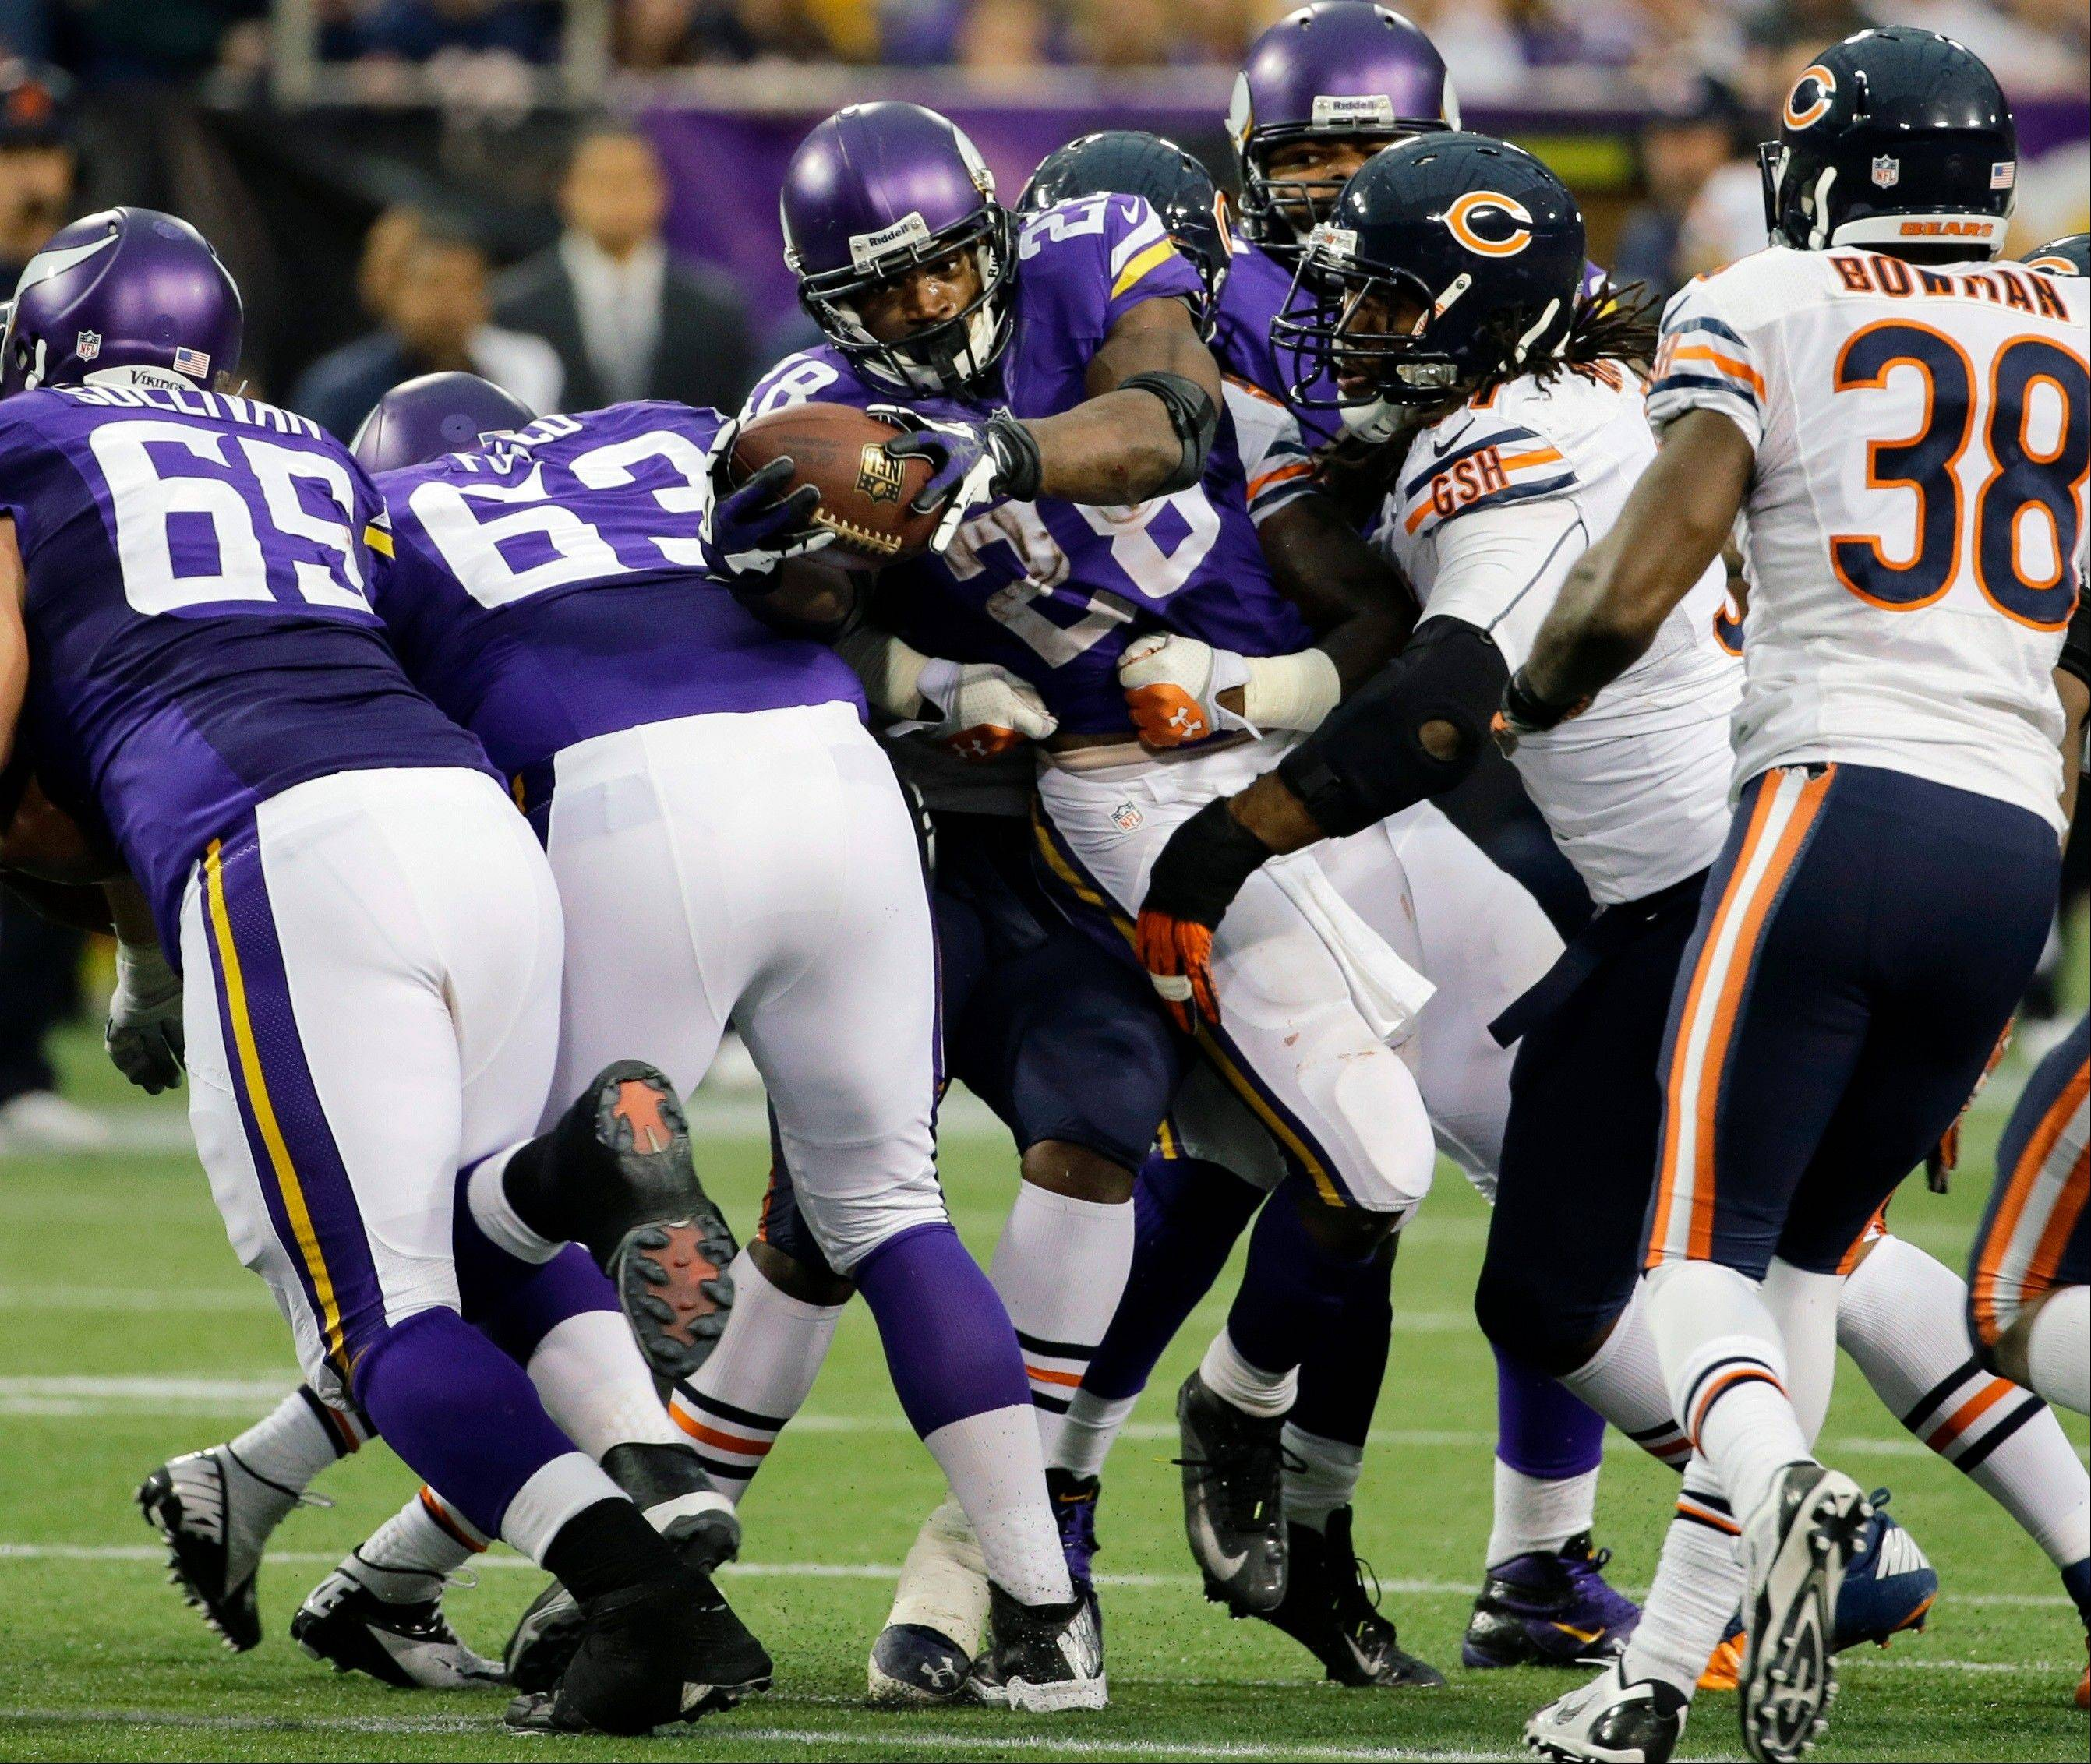 Minnesota Vikings running back Adrian Peterson, center, fights for extra yardage during the second half.